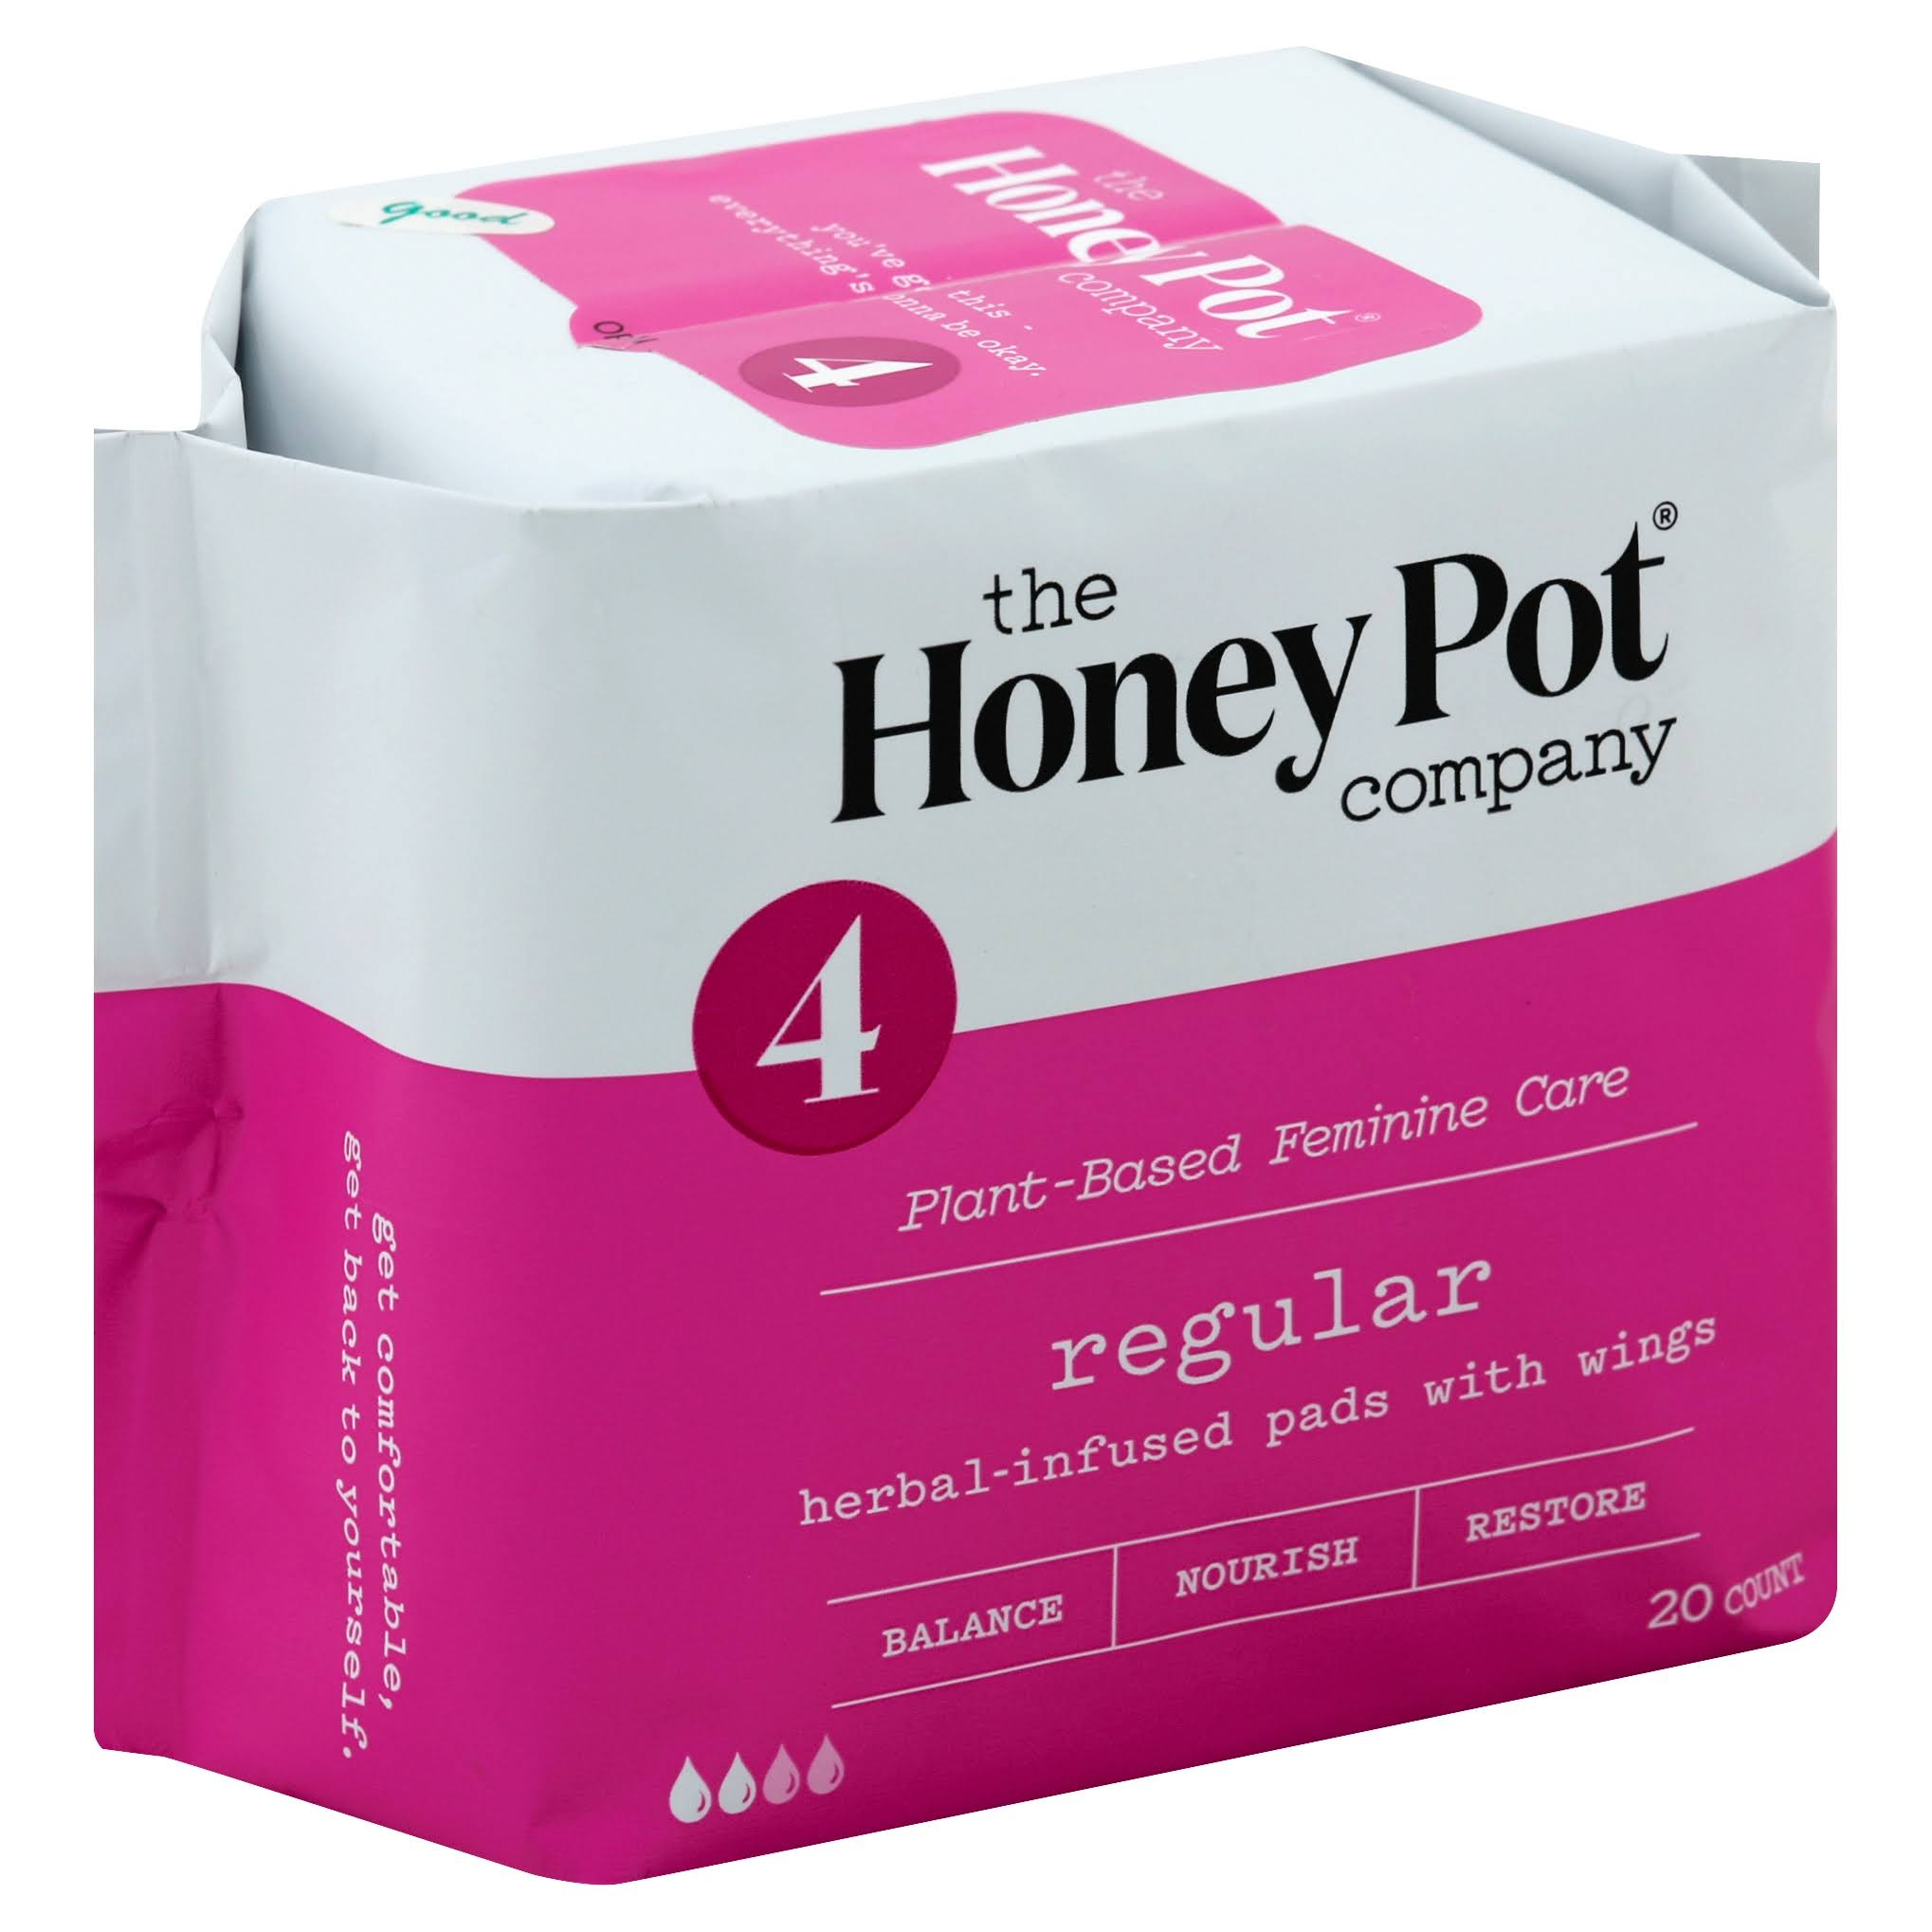 The Honey Pot Regular Feminine Pads Pack - With Wings, 20pk